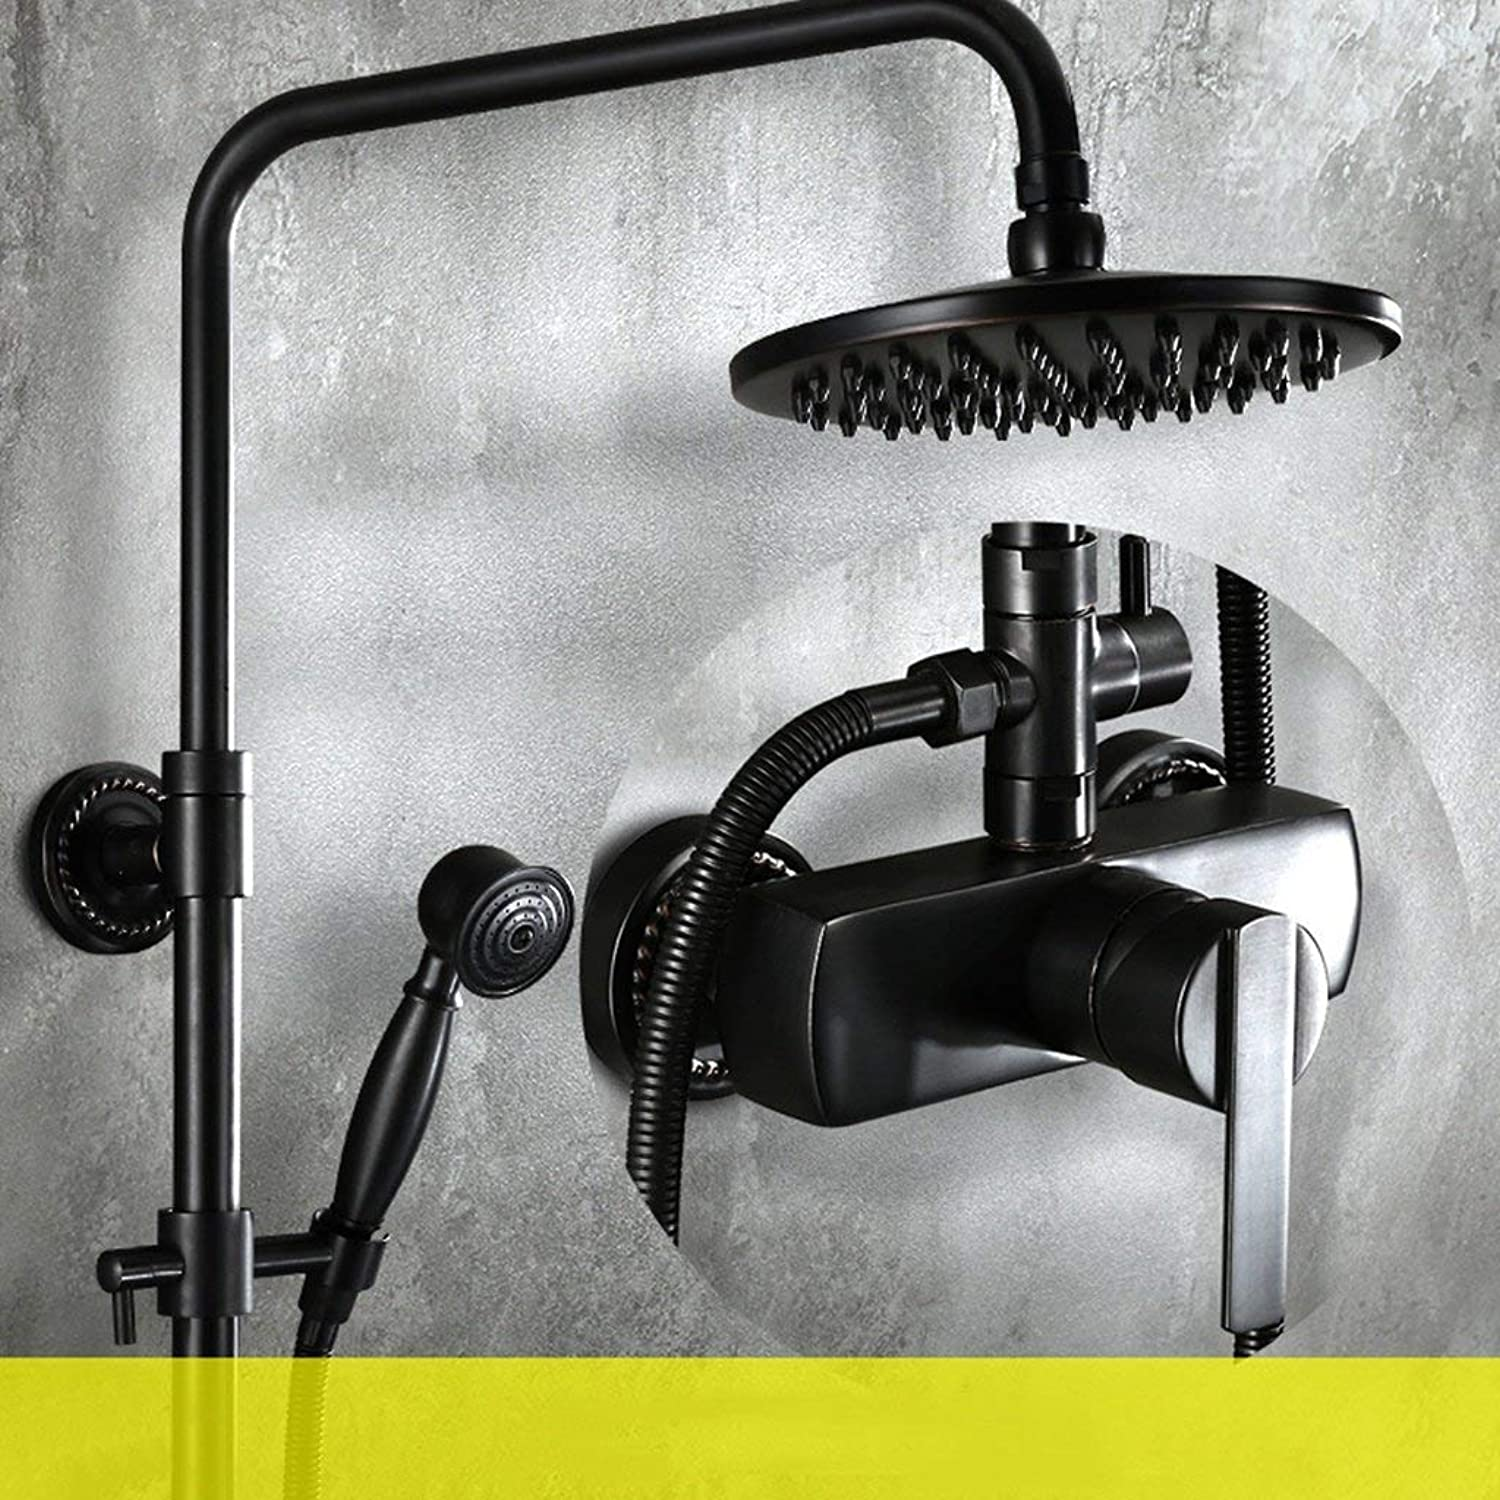 Shower set European style Black shower Device Faucet Supercharged Bathroom full copper Imitation ancient take a shower Device